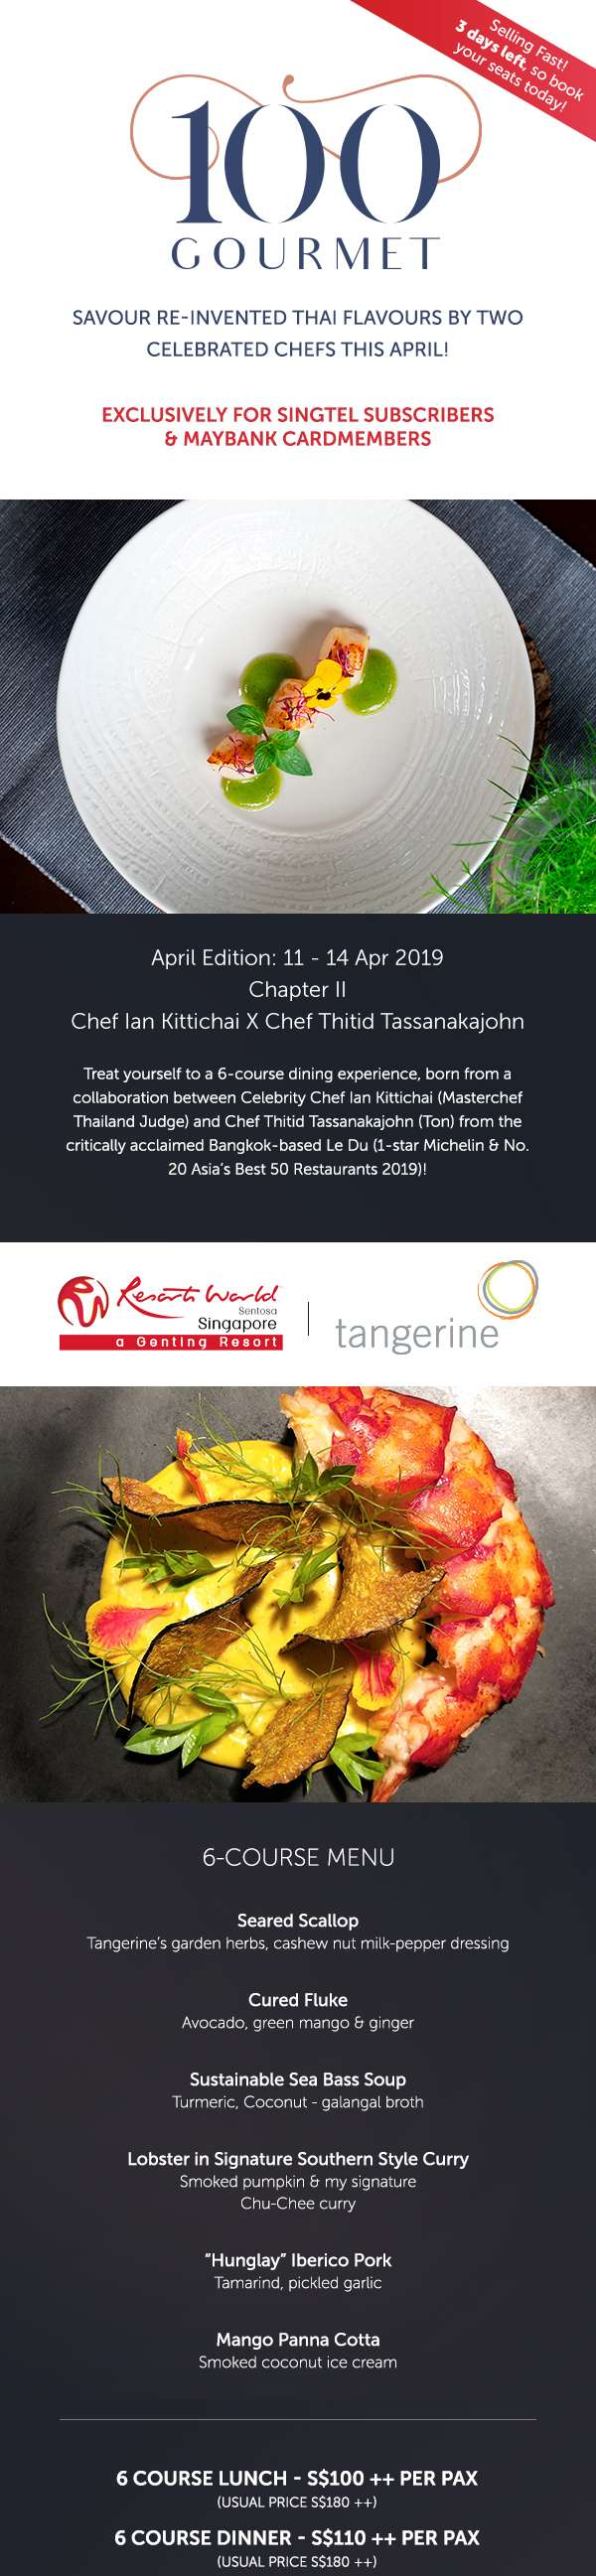 100Gourmet: Tangerine - 6 course menu for lunch and dinner from $100++